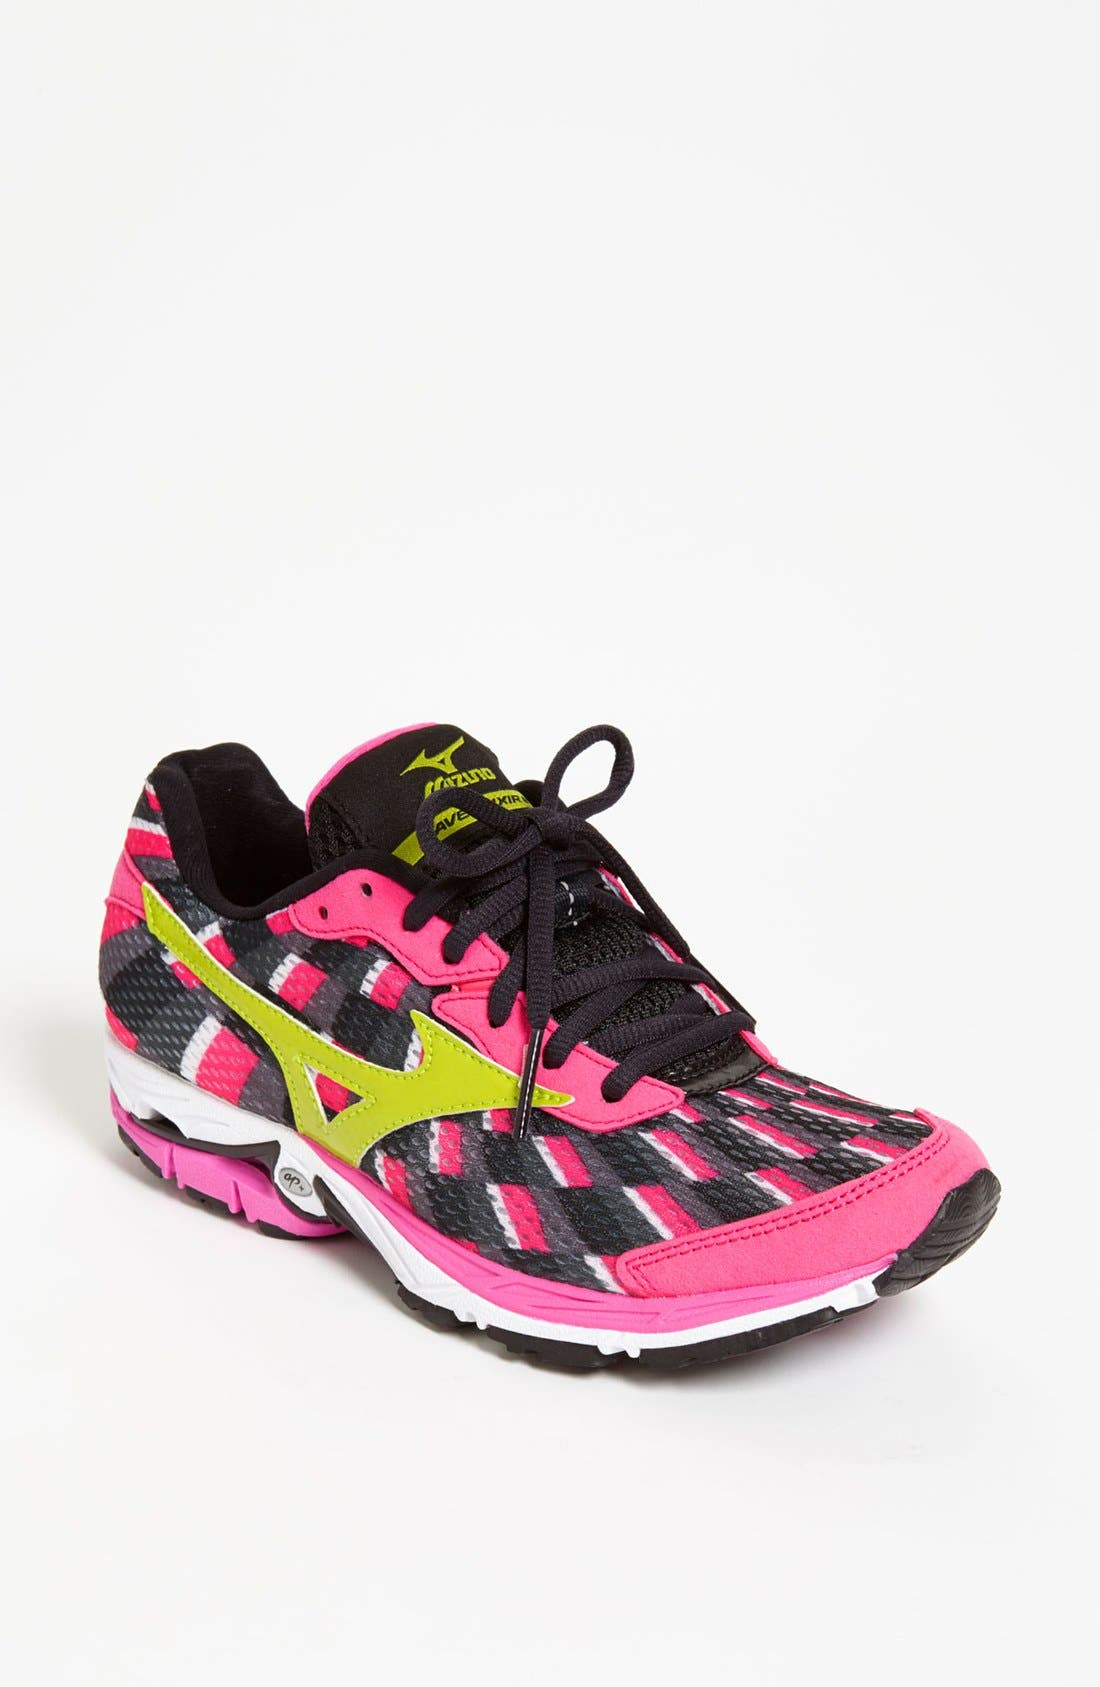 Main Image - Mizuno 'Wave Elixir 8' Running Shoe (Women)